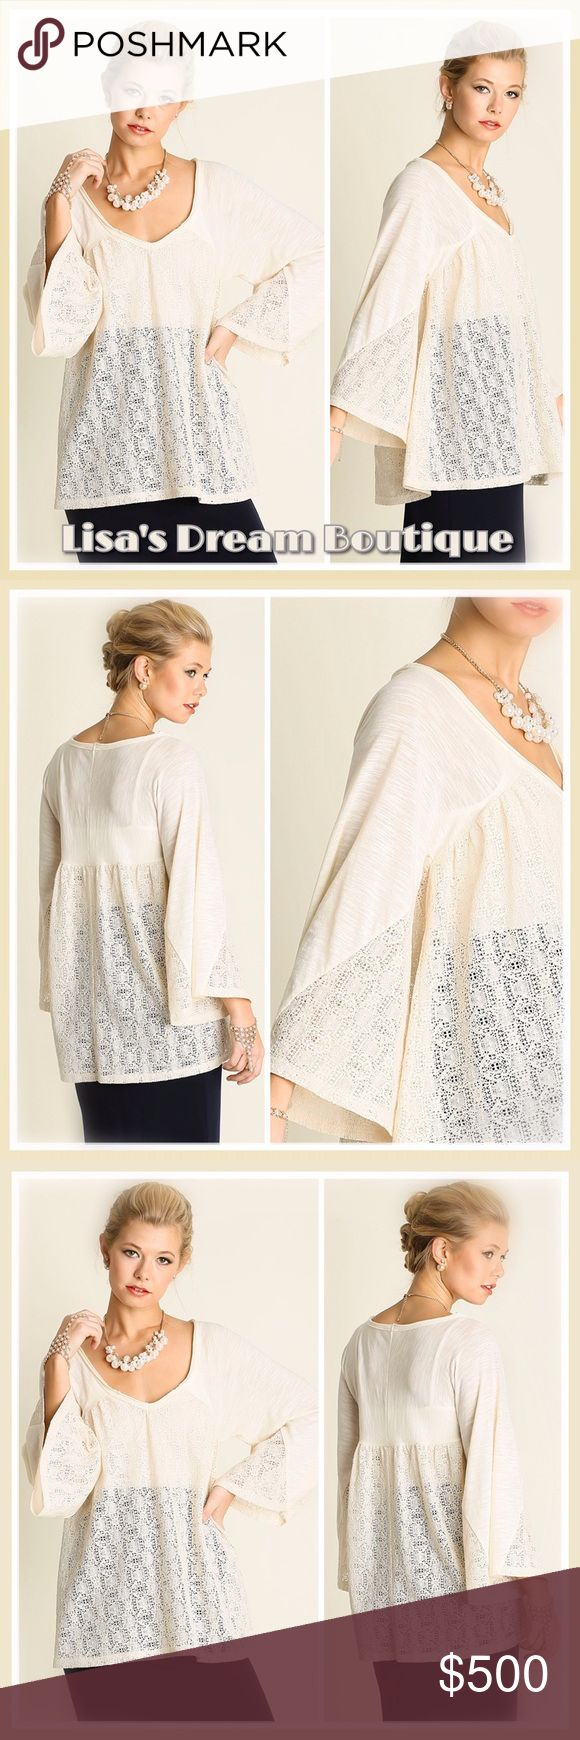 ✨Cream V-Neck Lace Detailed Top✨ 🆕Gorgeous Relaxed V-neck top featuring bell sleeves and beautiful Lace detail🌷Premium quality from Umgee🌷Will fit to your normal size: Size Large is modeled on size 12 body form/Lightweight cotton blend🌷🌼Perfectly dressy yet casual🌼🔹NO TRADES🔹PRICE WILL BE FIRM UNLESS BUNDLED🔹💟25% OFF BUNDLES {Limited Time}💟 LDB Tops Tunics